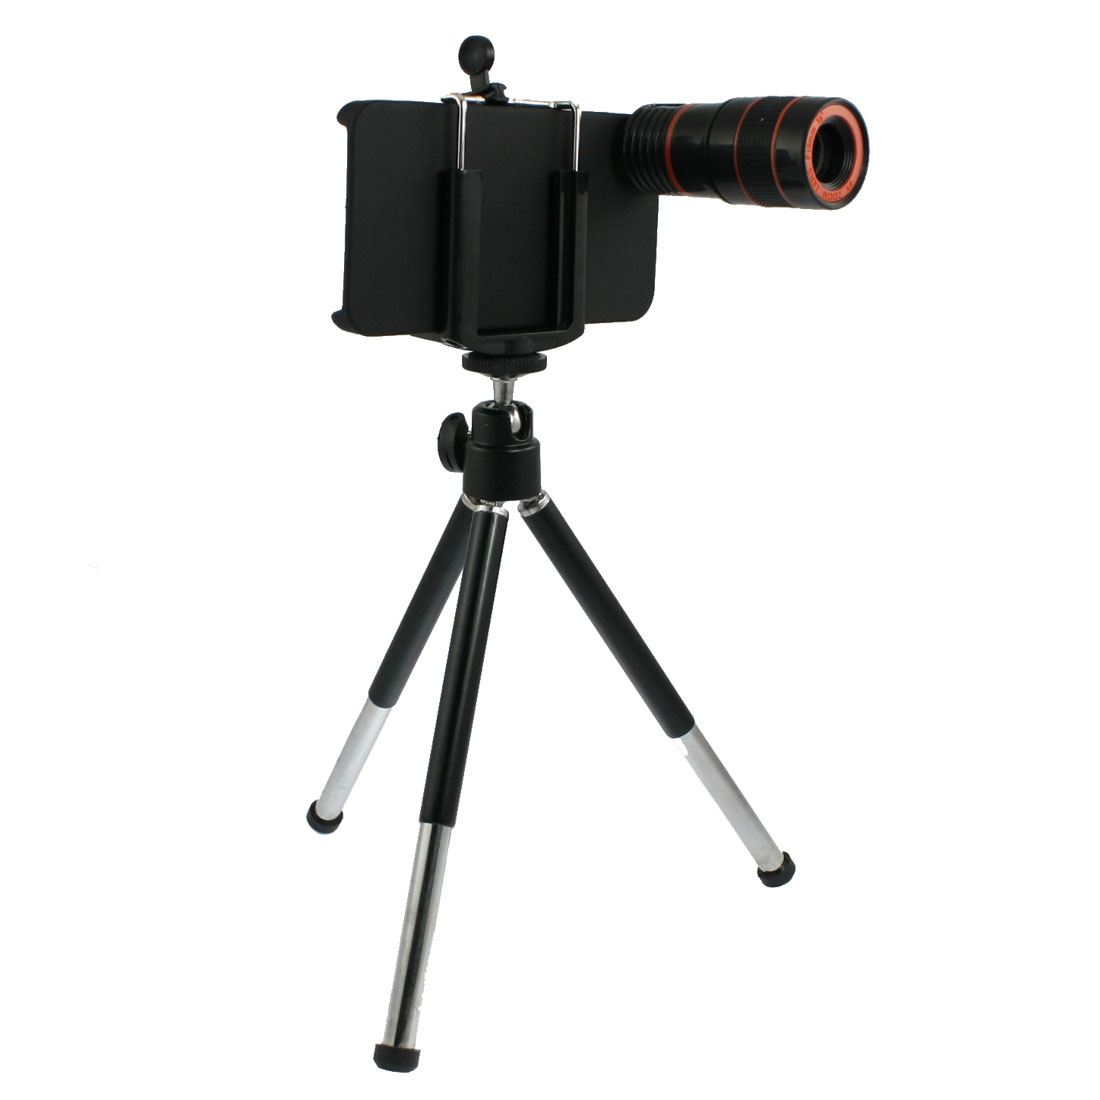 8X Zoom Telescope Camera Lens w Mini Tripod Holder Back Case for Apple iPhone 4 4G